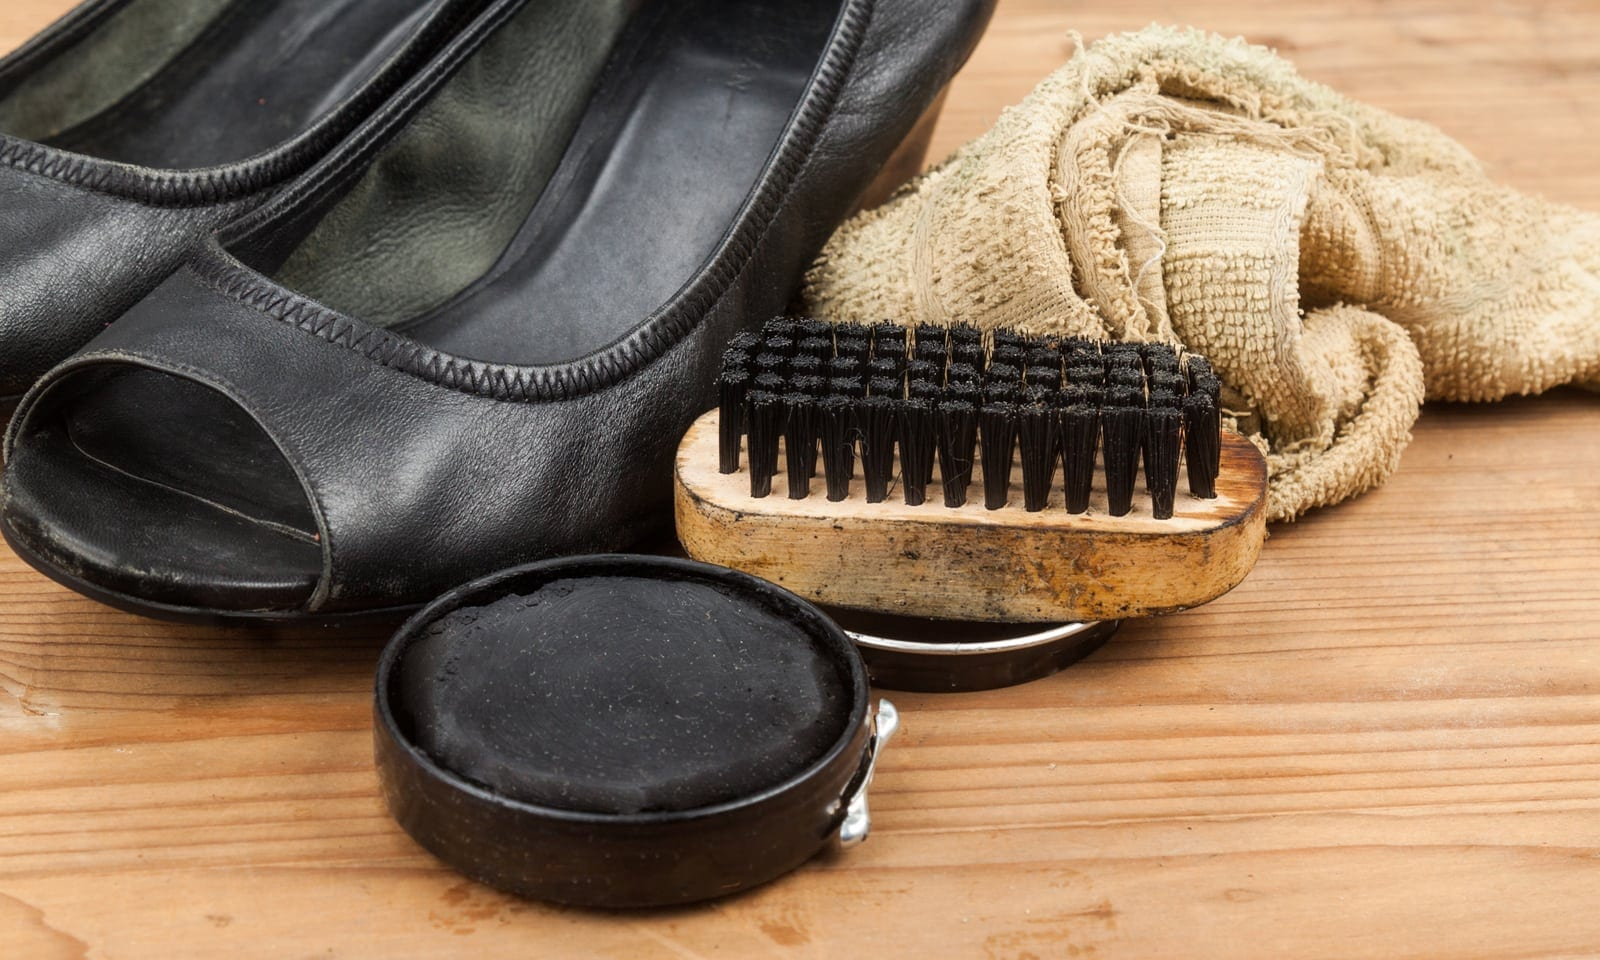 a50cdb34c39 It allows your shoe to breath. Cream shoe polish is one of the best to give  your shoe the nourishment and shine you are looking for.